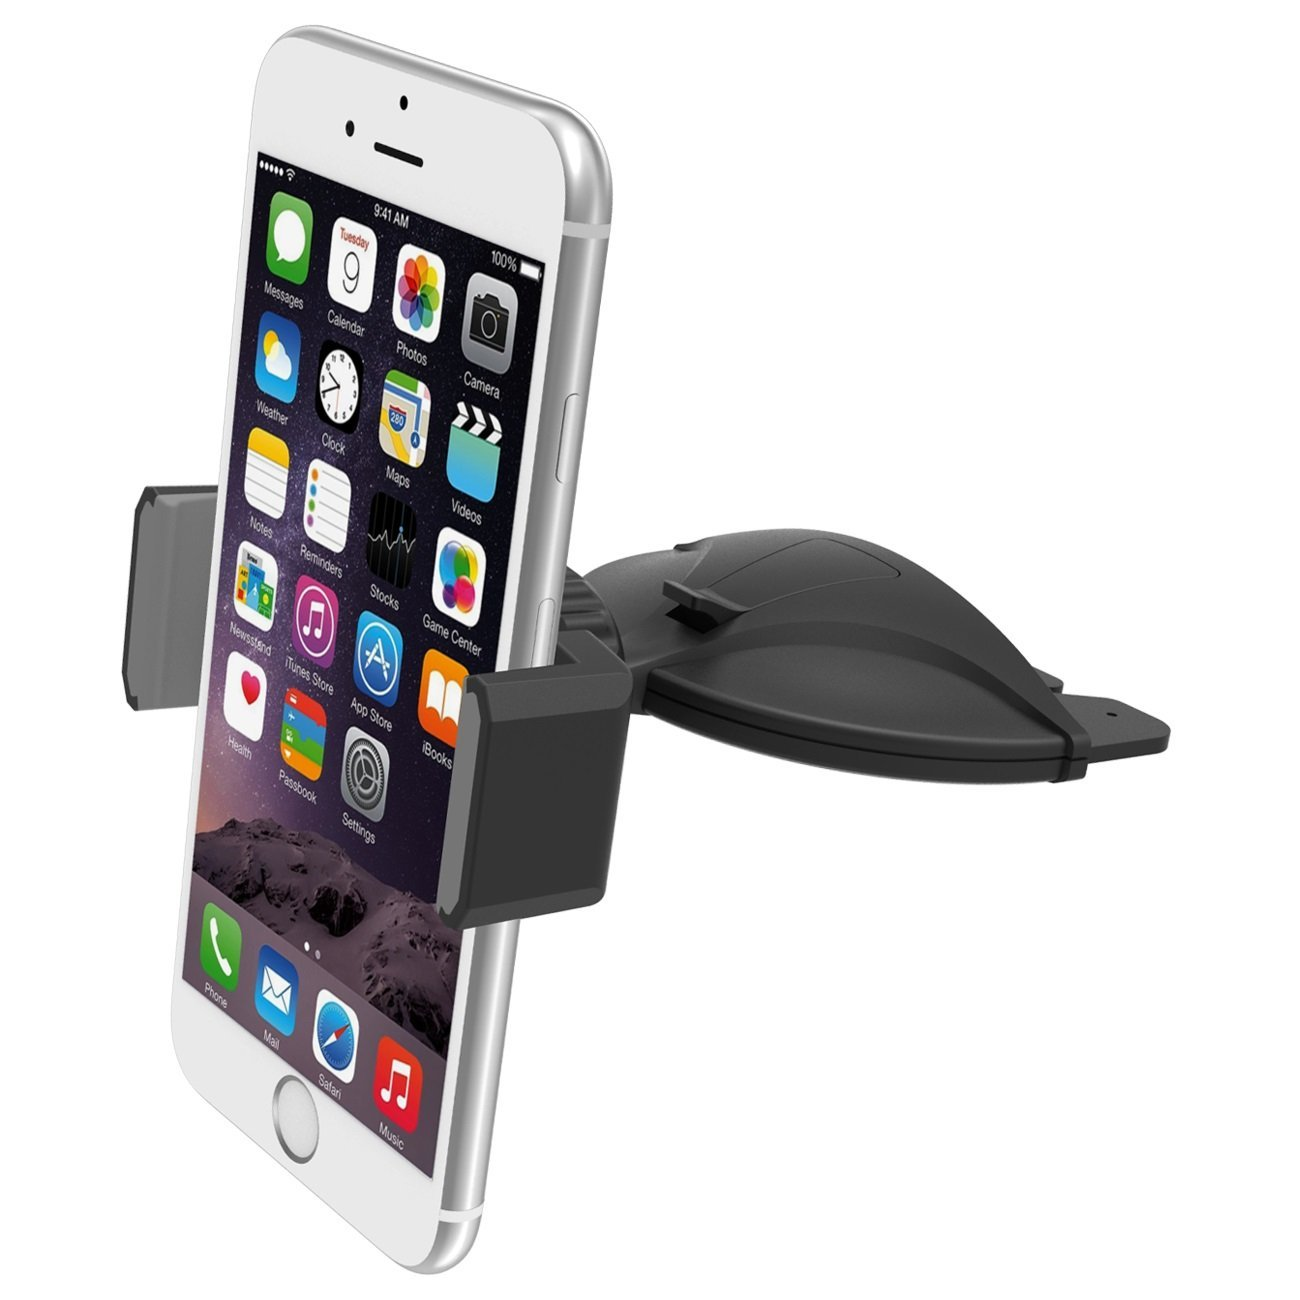 AICase Car Mount Phone Holder for iPhone 6s Plus 6s SE 5s 5c Samsung Galaxy S7 Edge S6 S5 Note 5 4 Car Mount Black//red